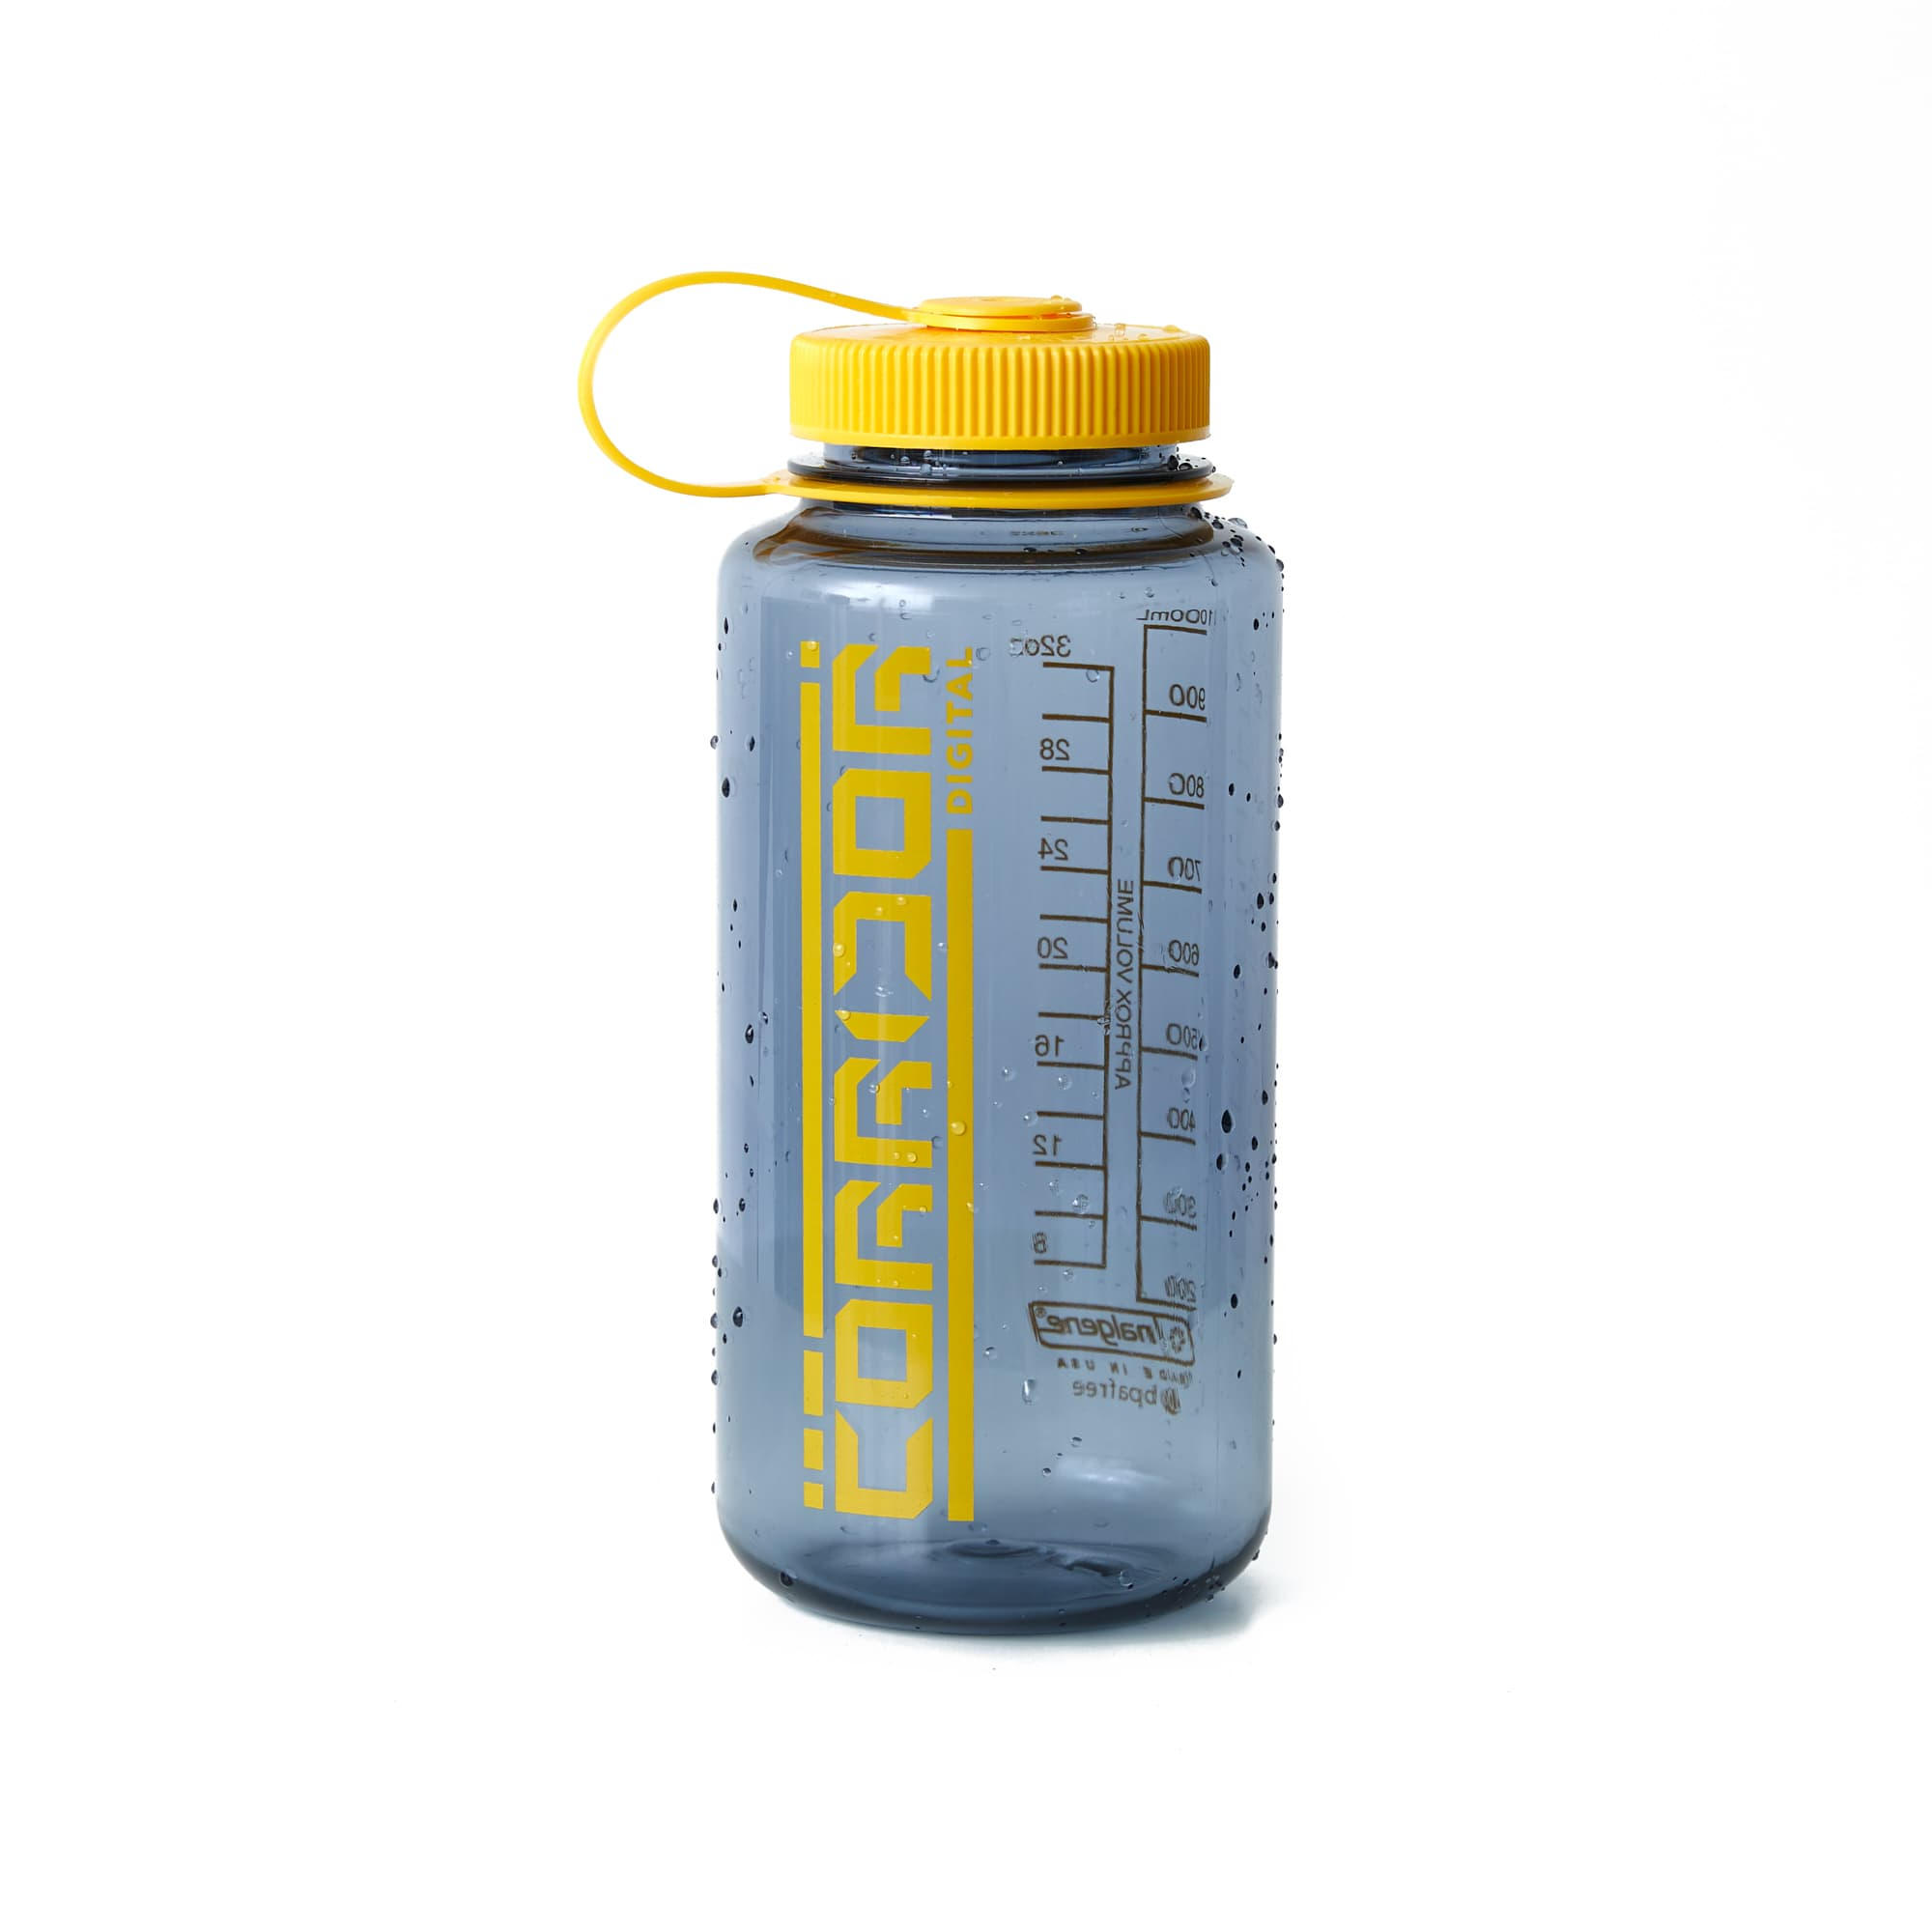 Corridor Digital x Nalgene 32oz Water Bottle